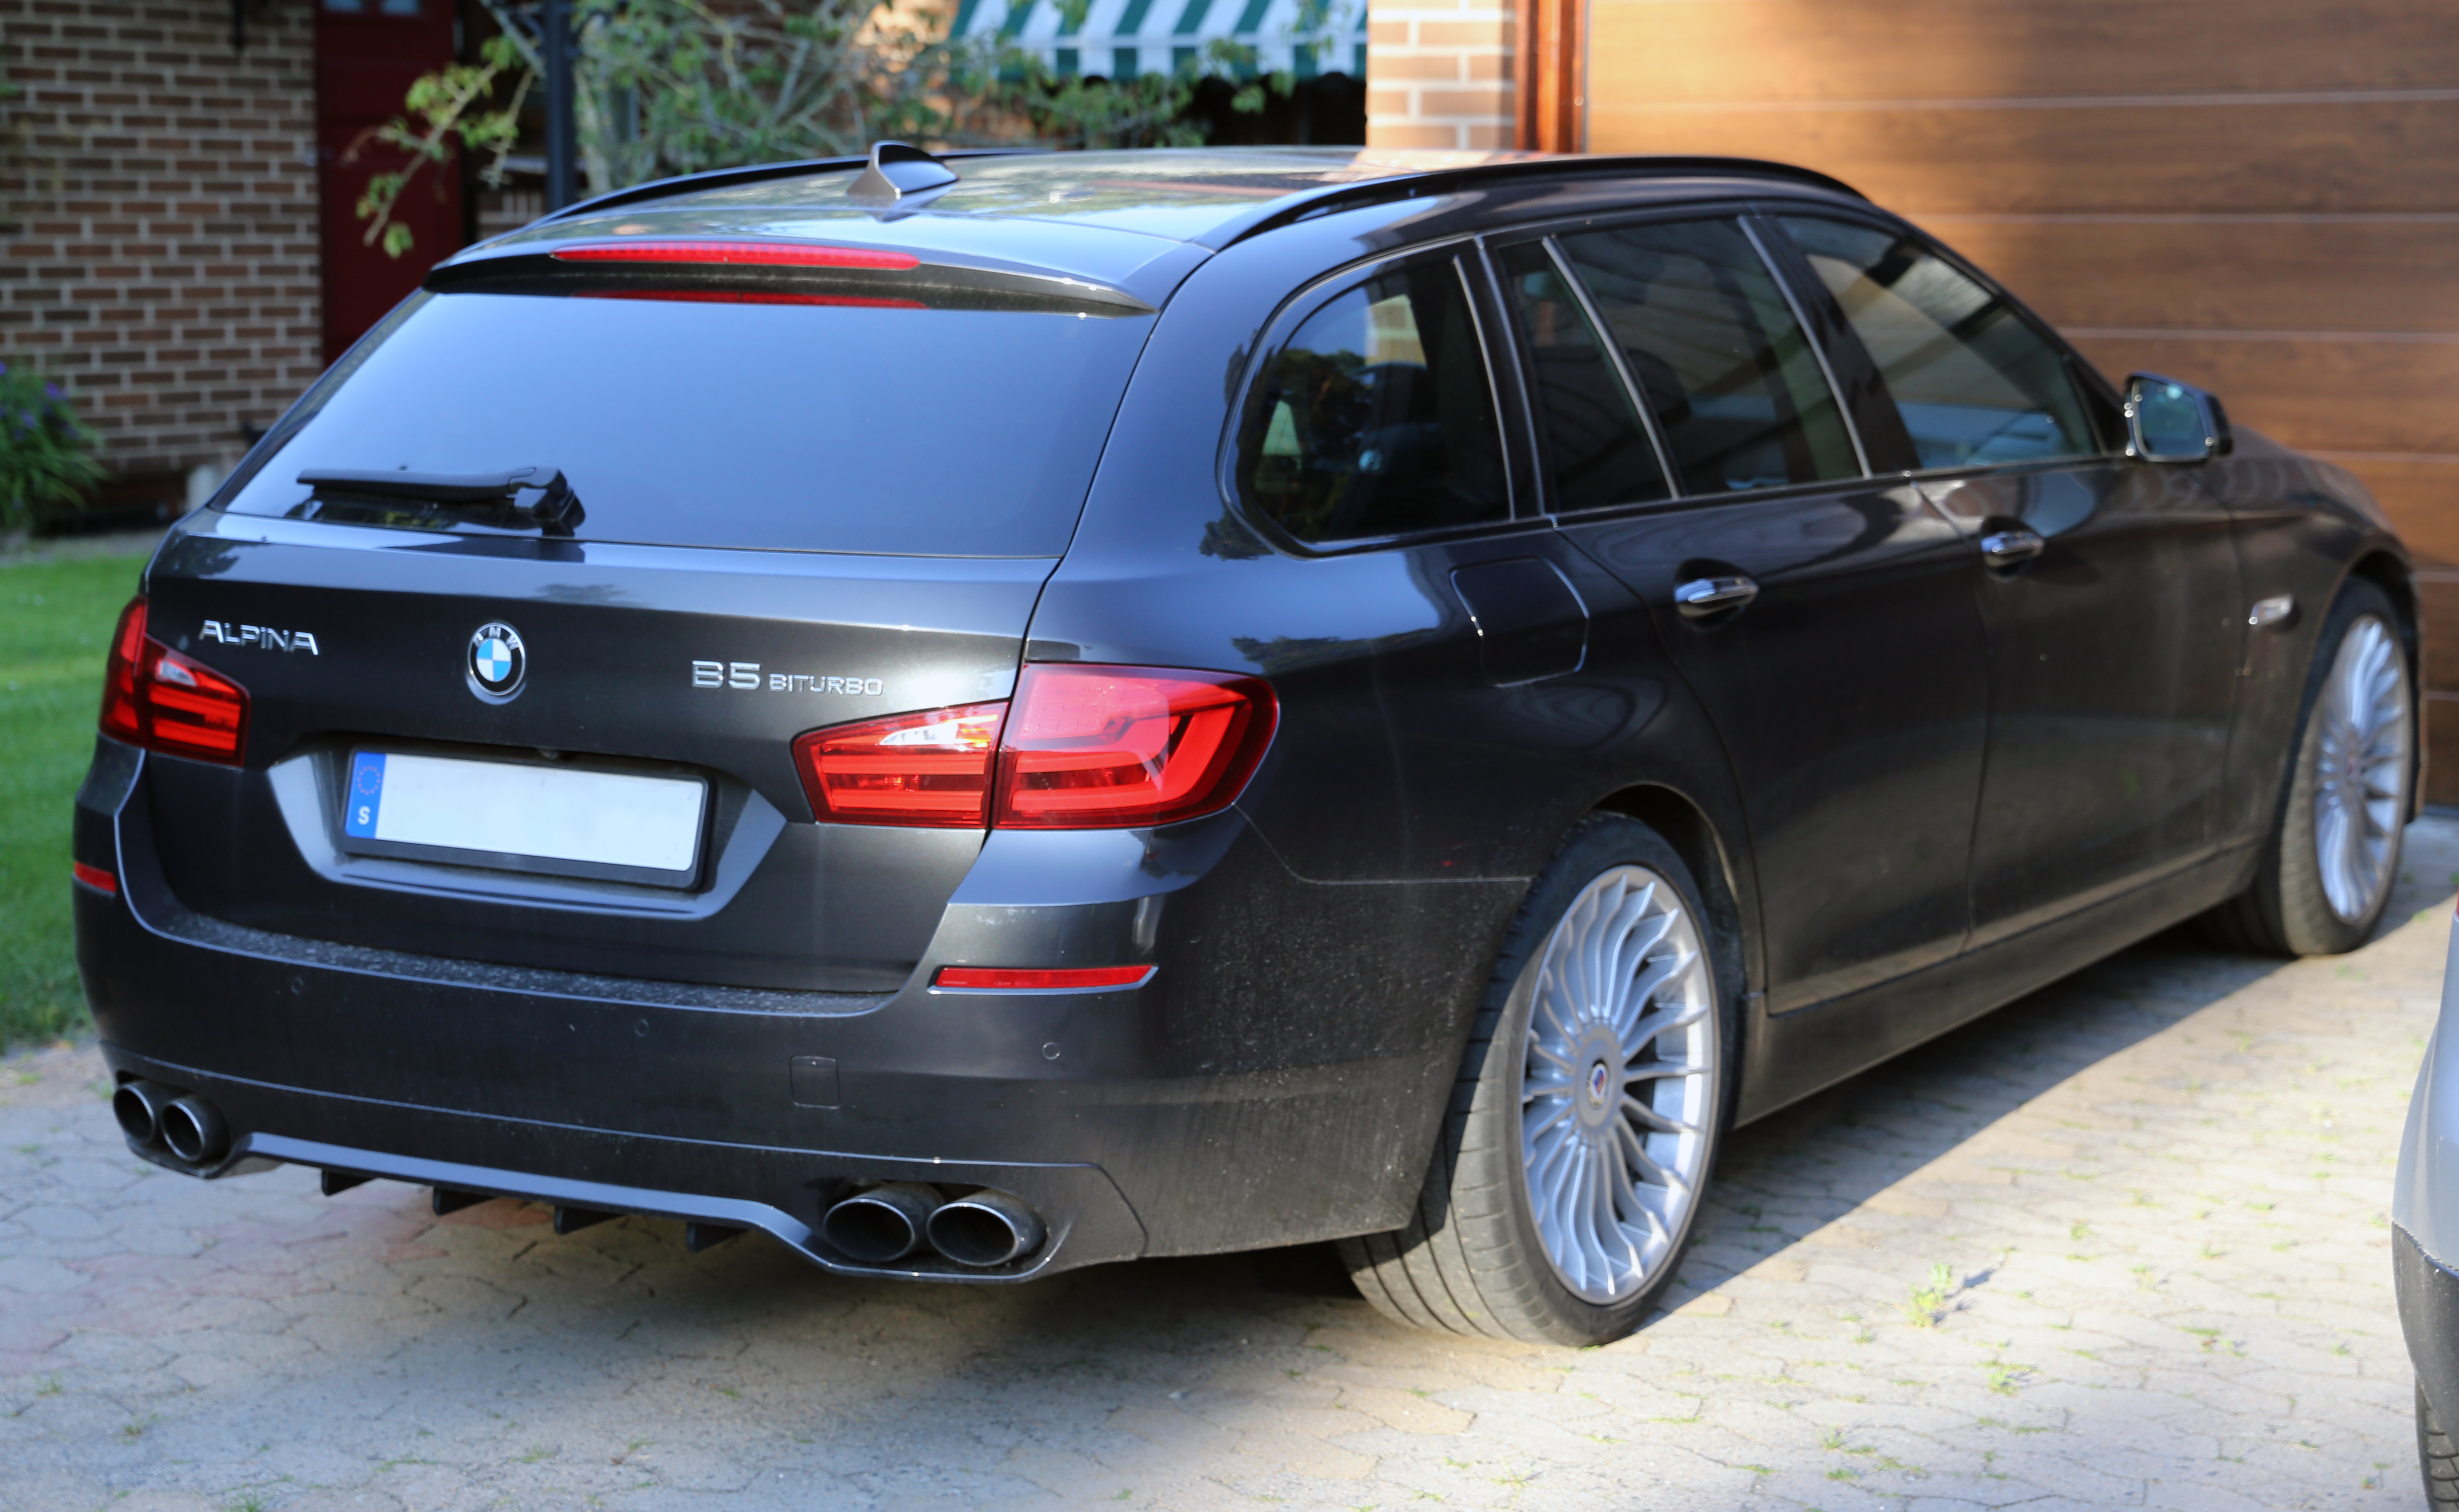 file 2012 alpina b5 biturbo touring wikimedia commons. Black Bedroom Furniture Sets. Home Design Ideas